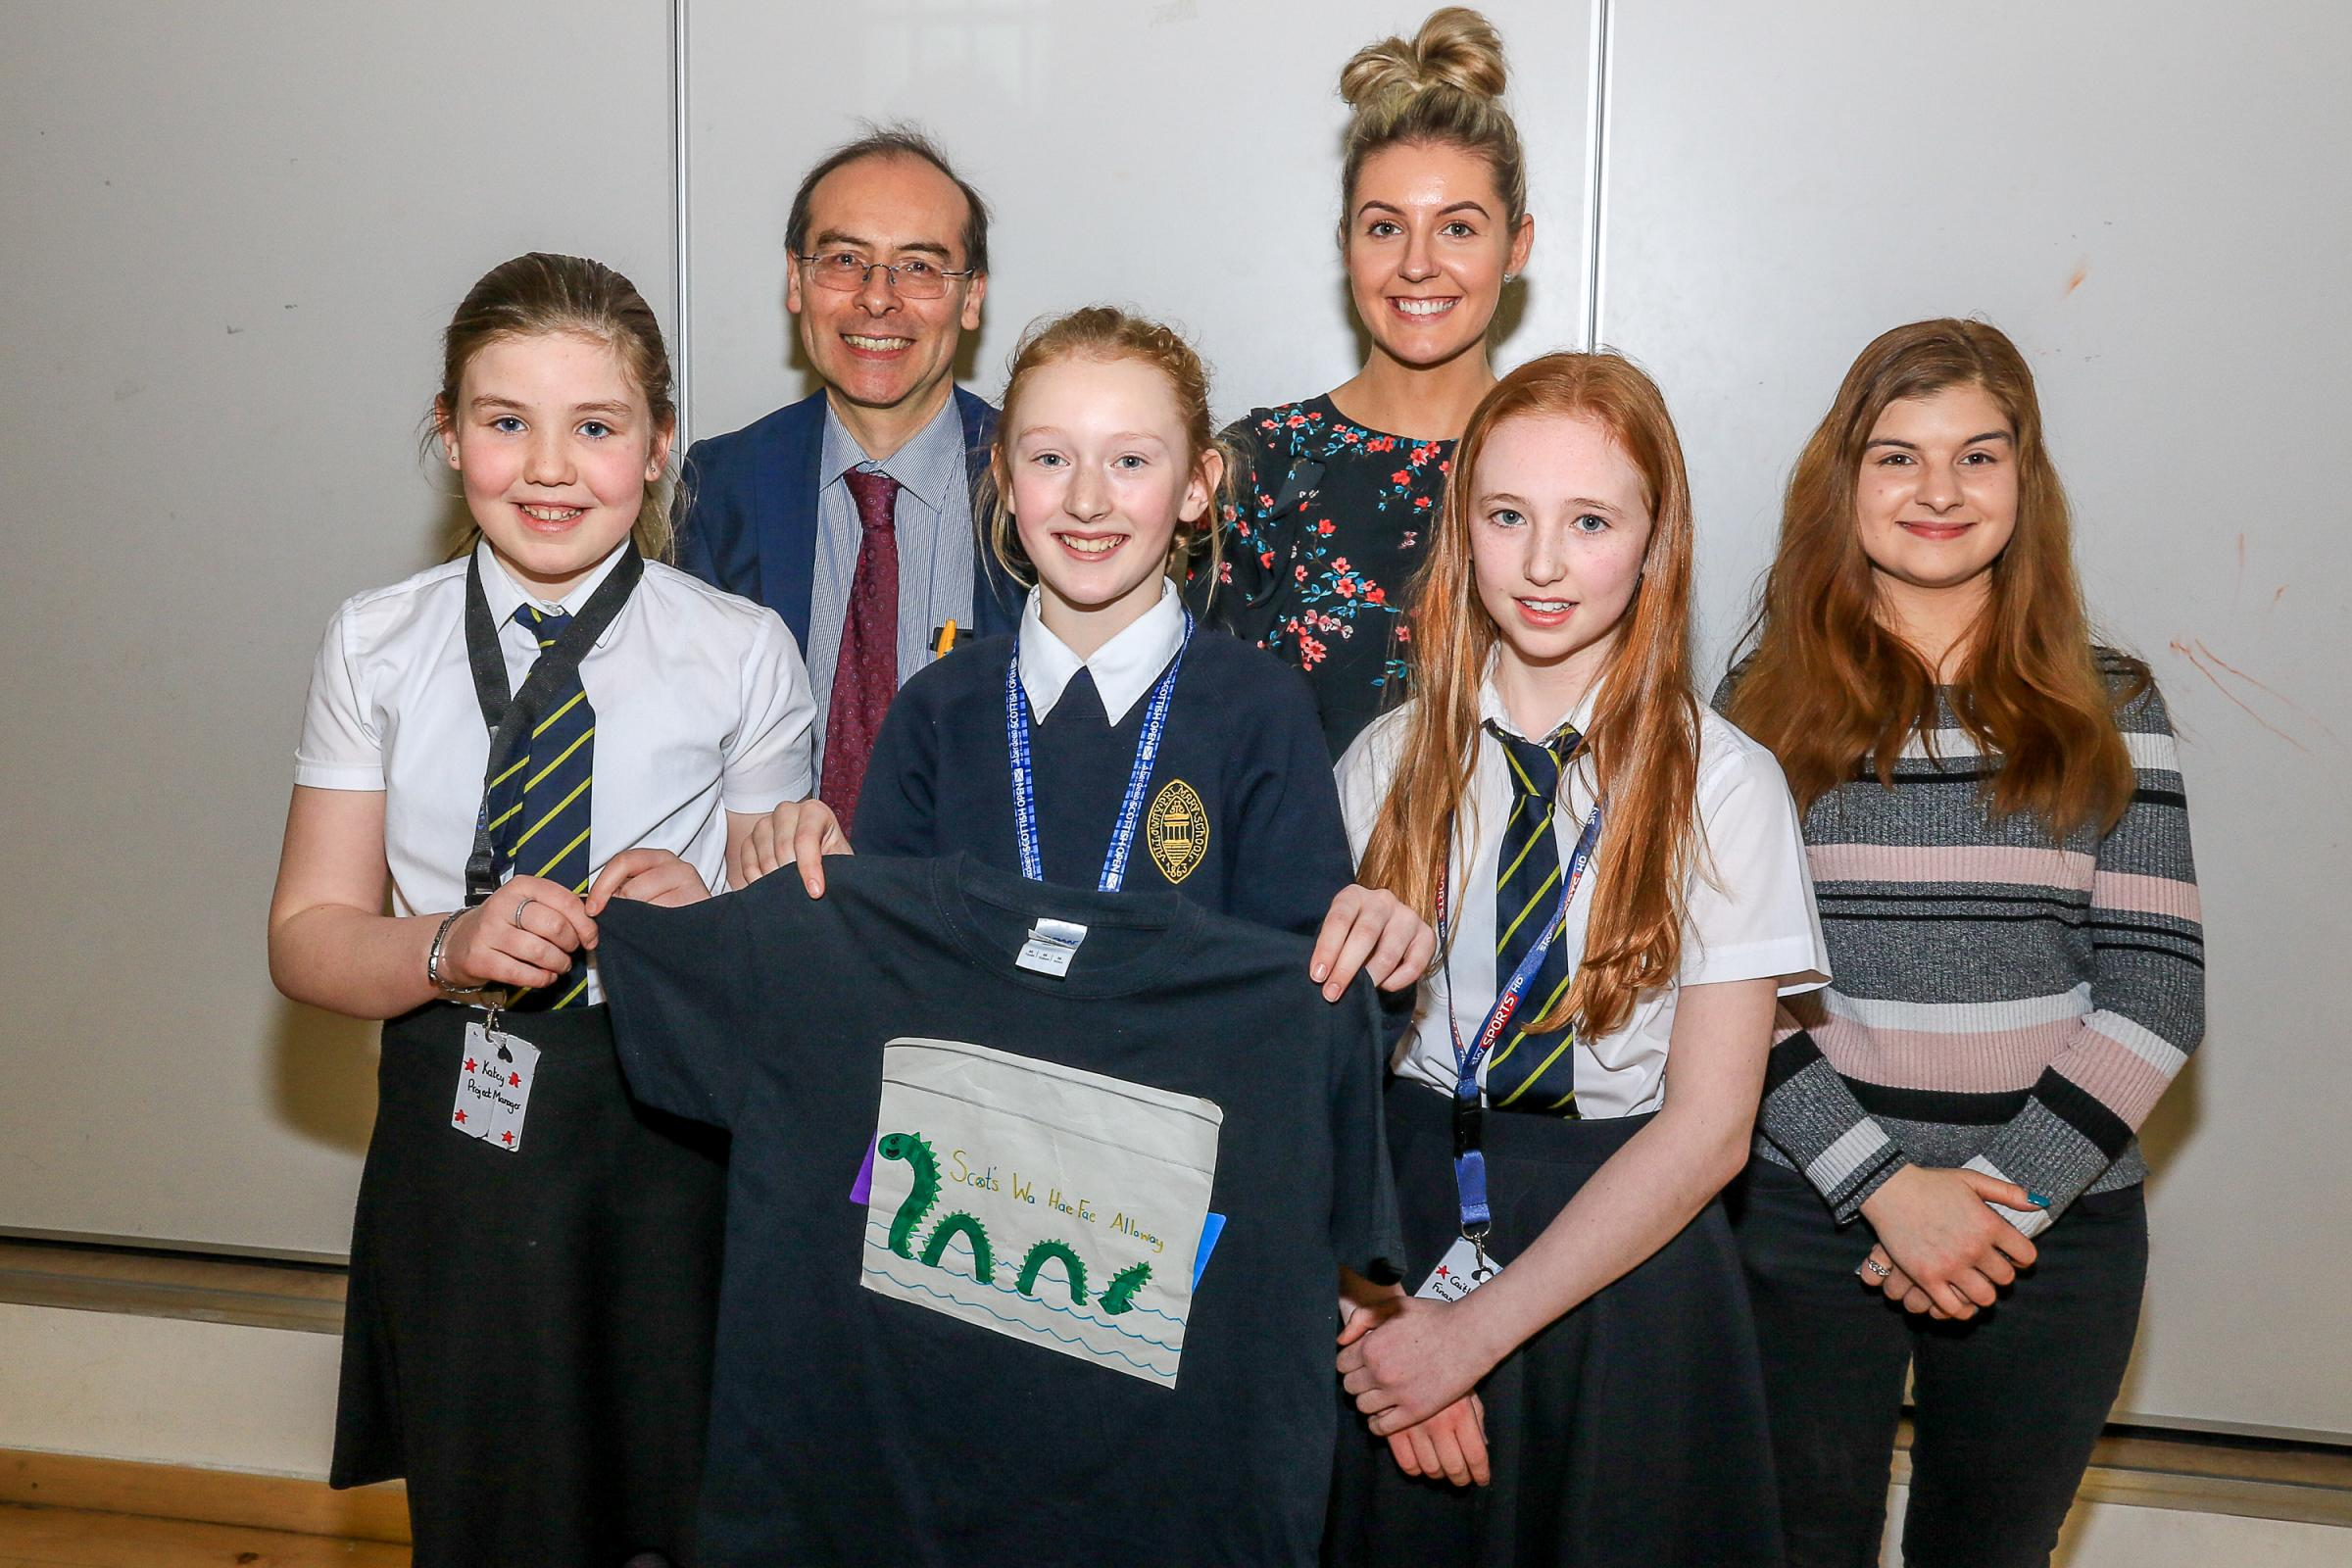 Dragons Den comes to Alloway Primary School